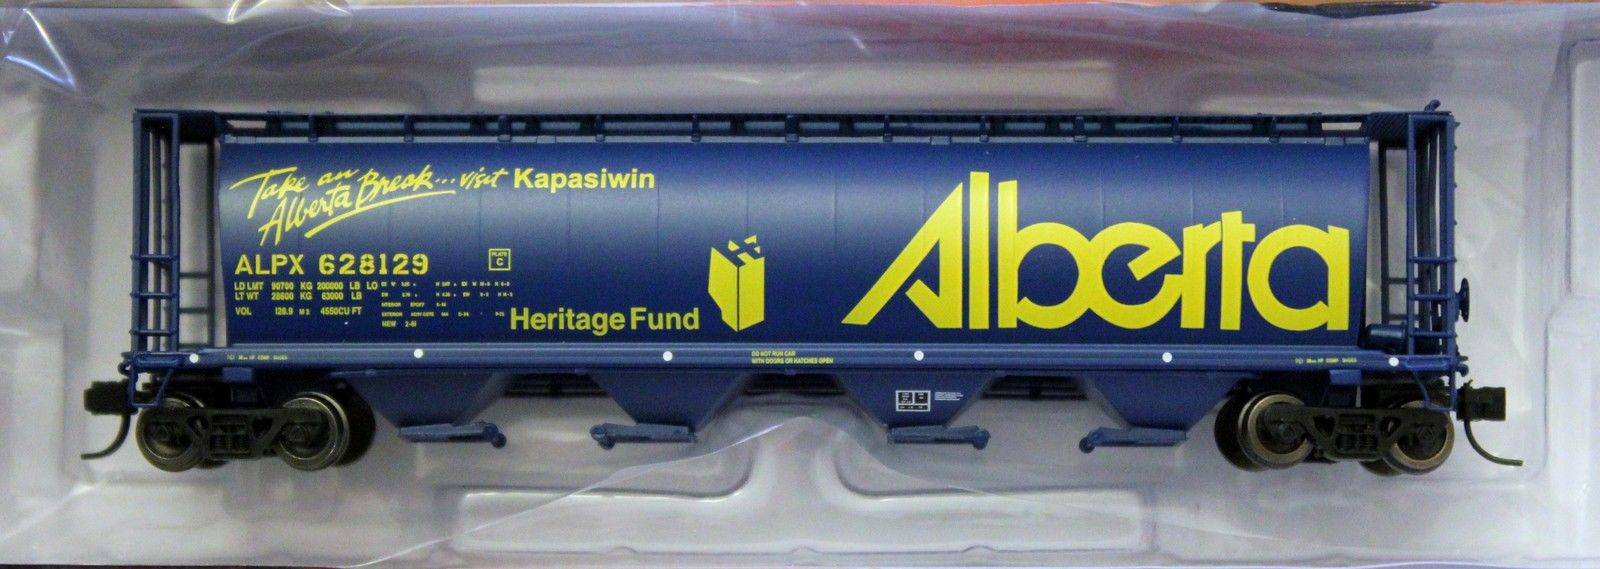 N Scale - InterMountain - 65118-57 - Covered Hopper, 4-Bay, Cylindrical - Alberta Government - 628129 Kapasiwin